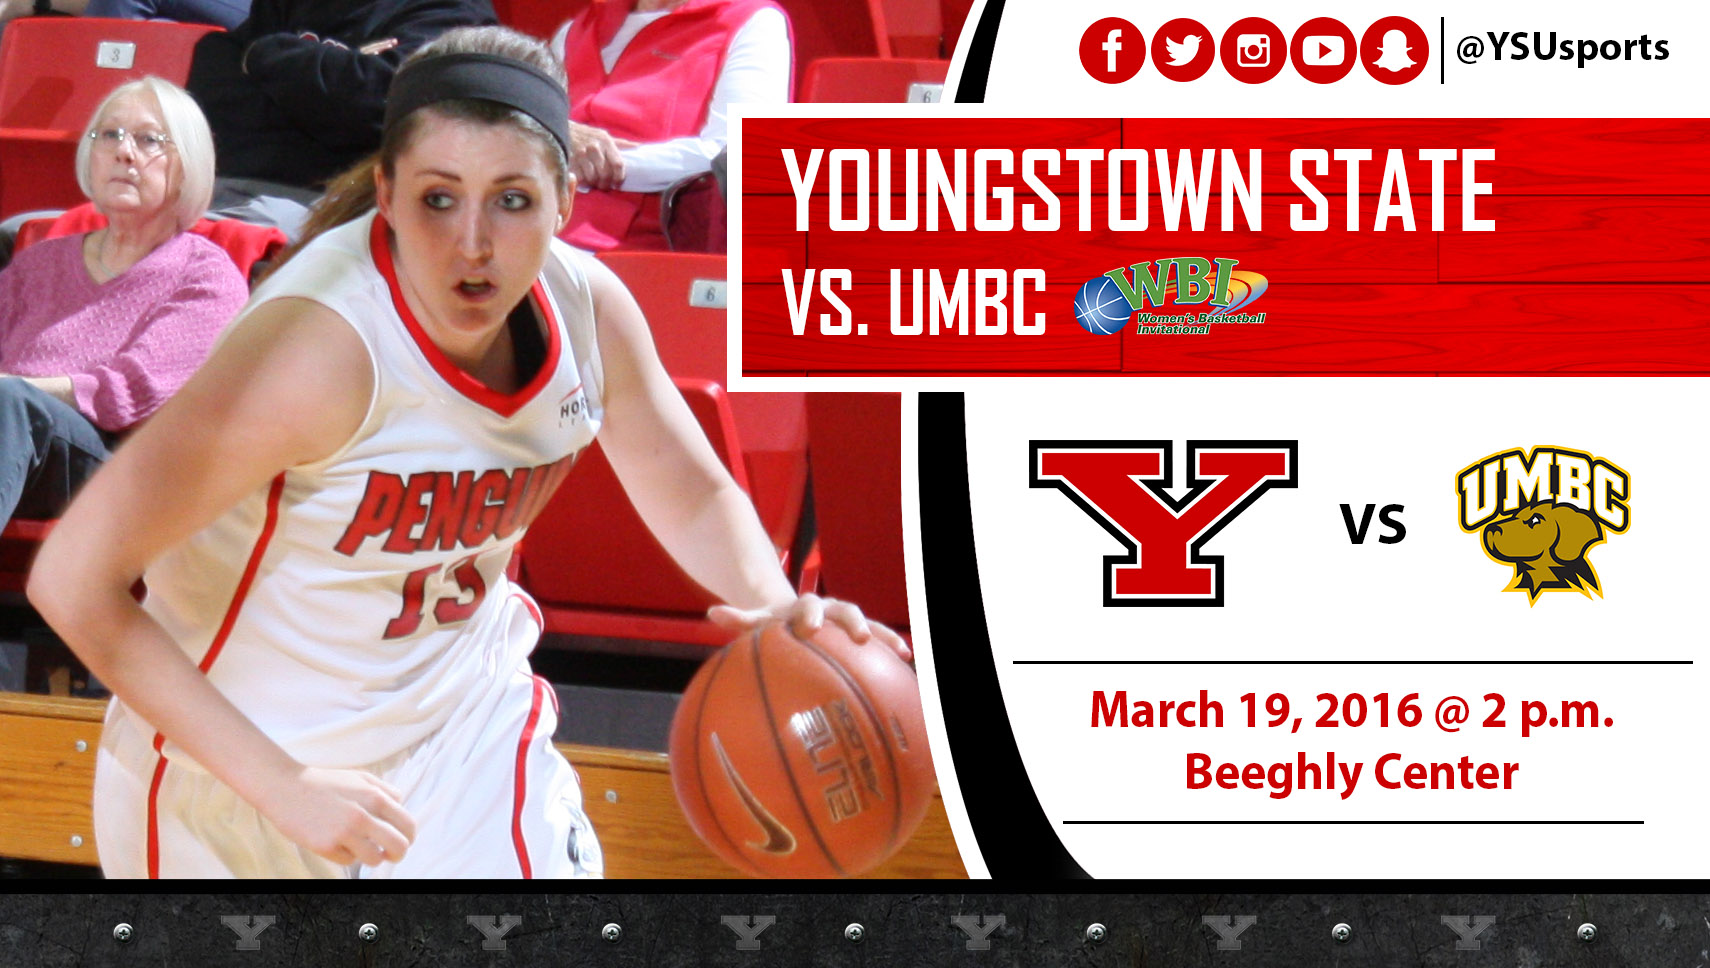 Penguins Welcome UMBC to Beeghly Center for Second Round of WBI on Saturday